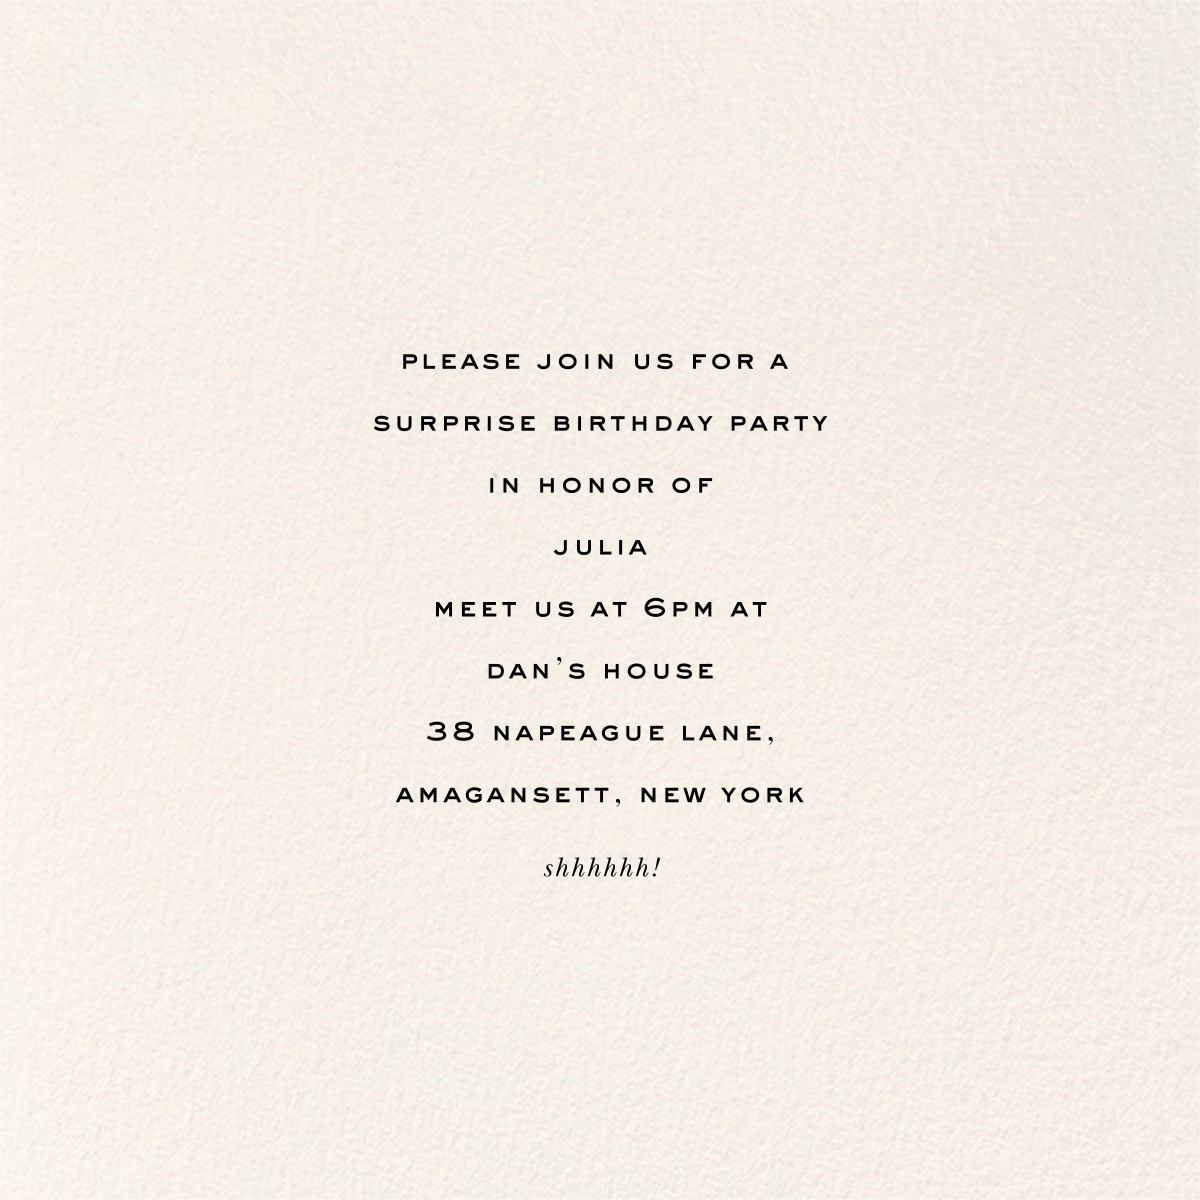 Balloon Birthday (Invitation) - kate spade new york - 50th birthday invitations - card back